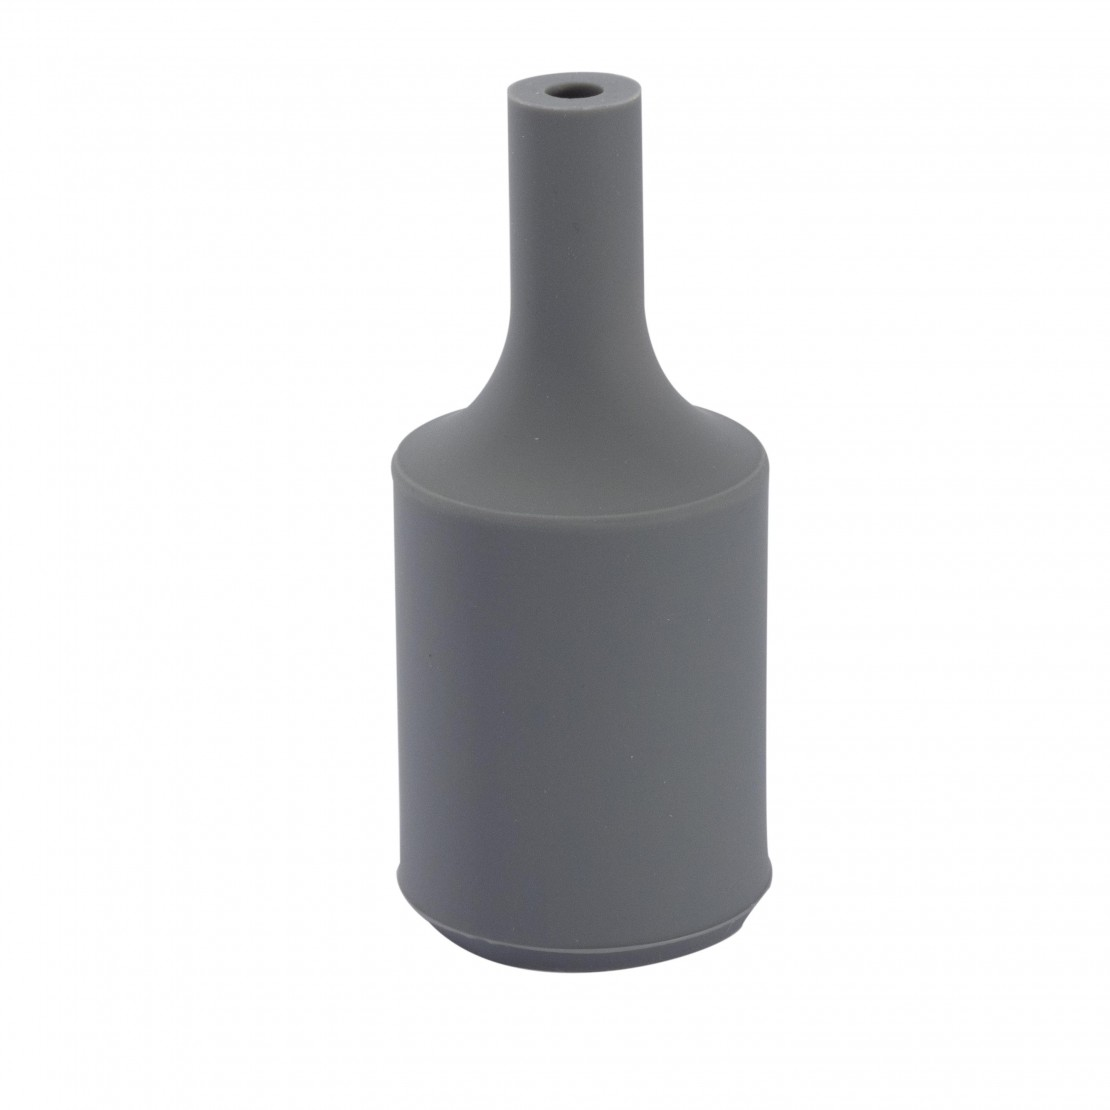 Douille silicone - gris clair